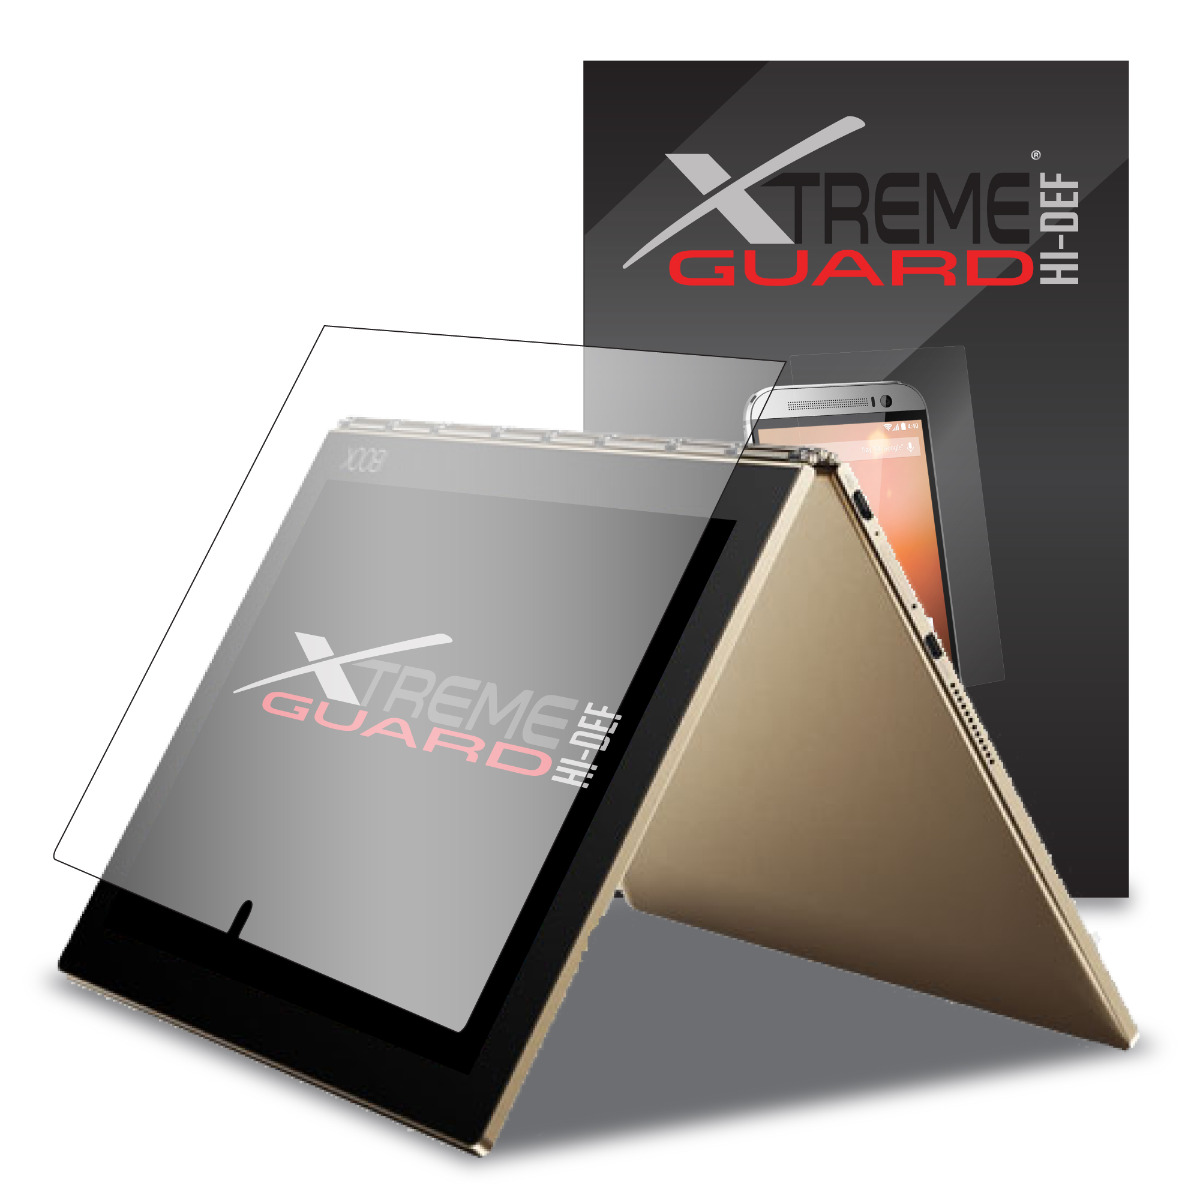 XShields© High Definition (HD+) Screen Protectors for Lenovo Yoga Book 10.1 (Maximum Clarity) Super Easy Installation [4-Pack] Lifetime Warranty, Advanced Touchscreen Accuracy